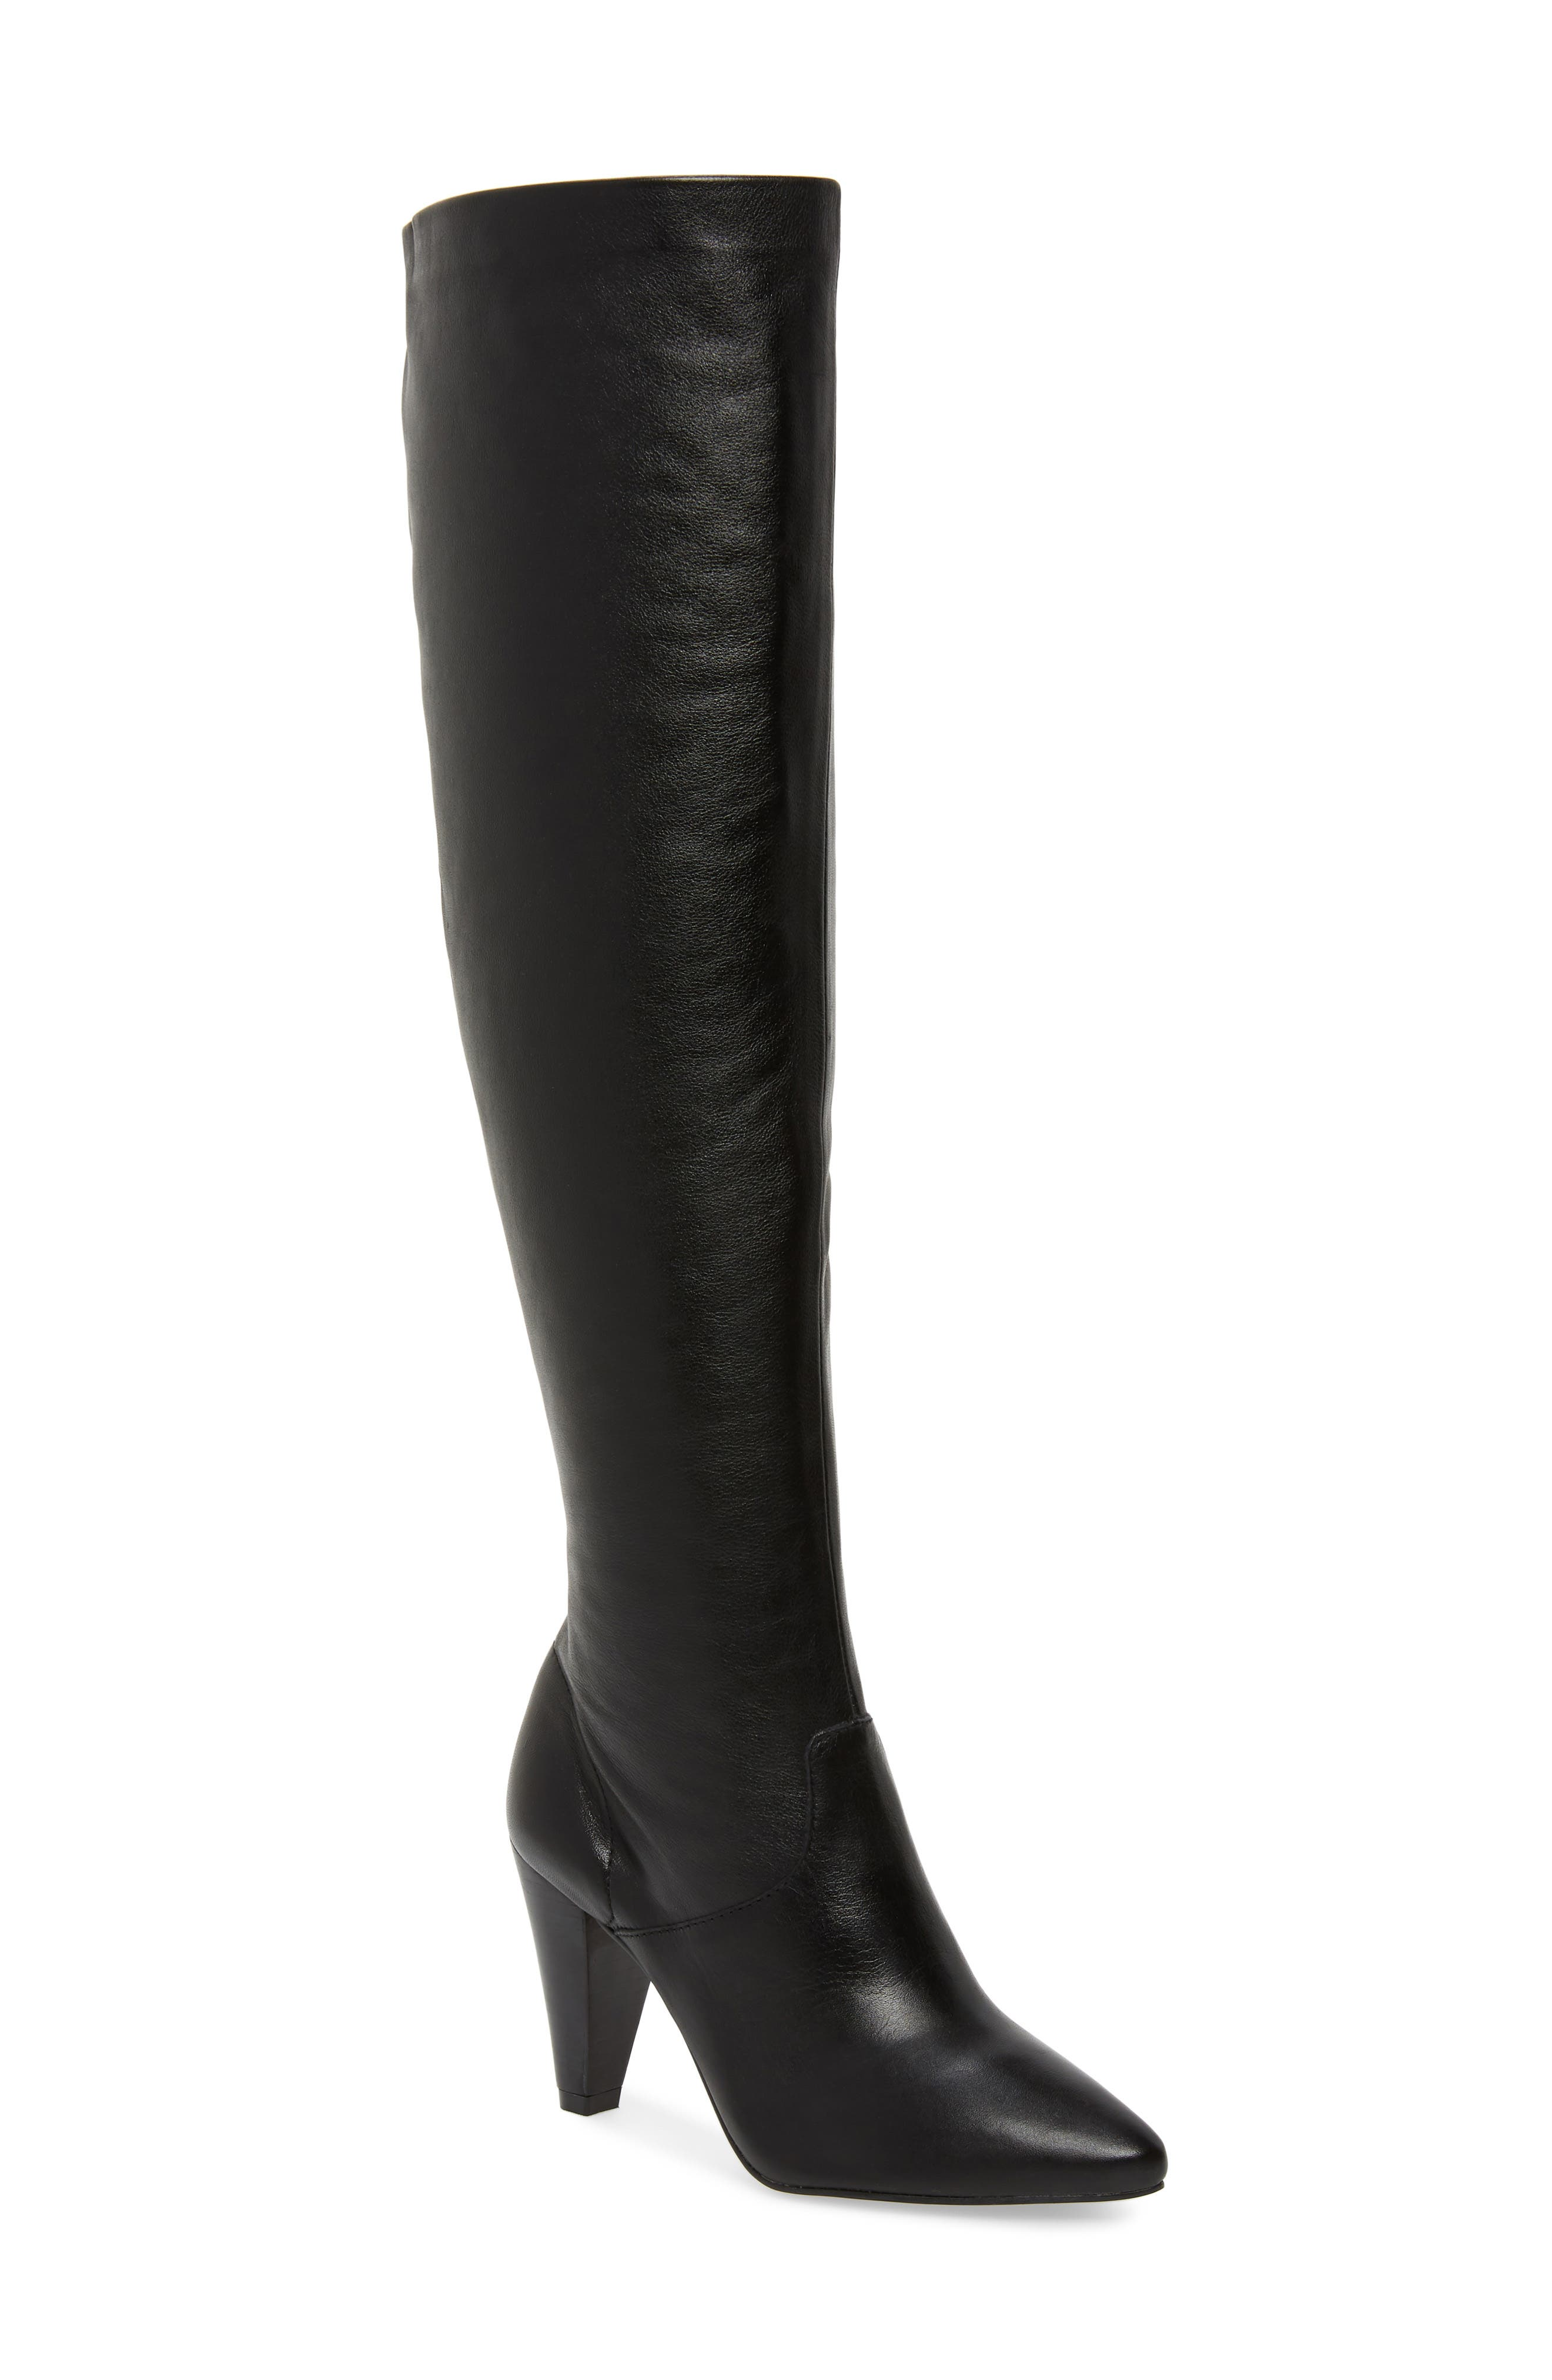 LUST FOR LIFE California Over The Knee Boot in Black Leather